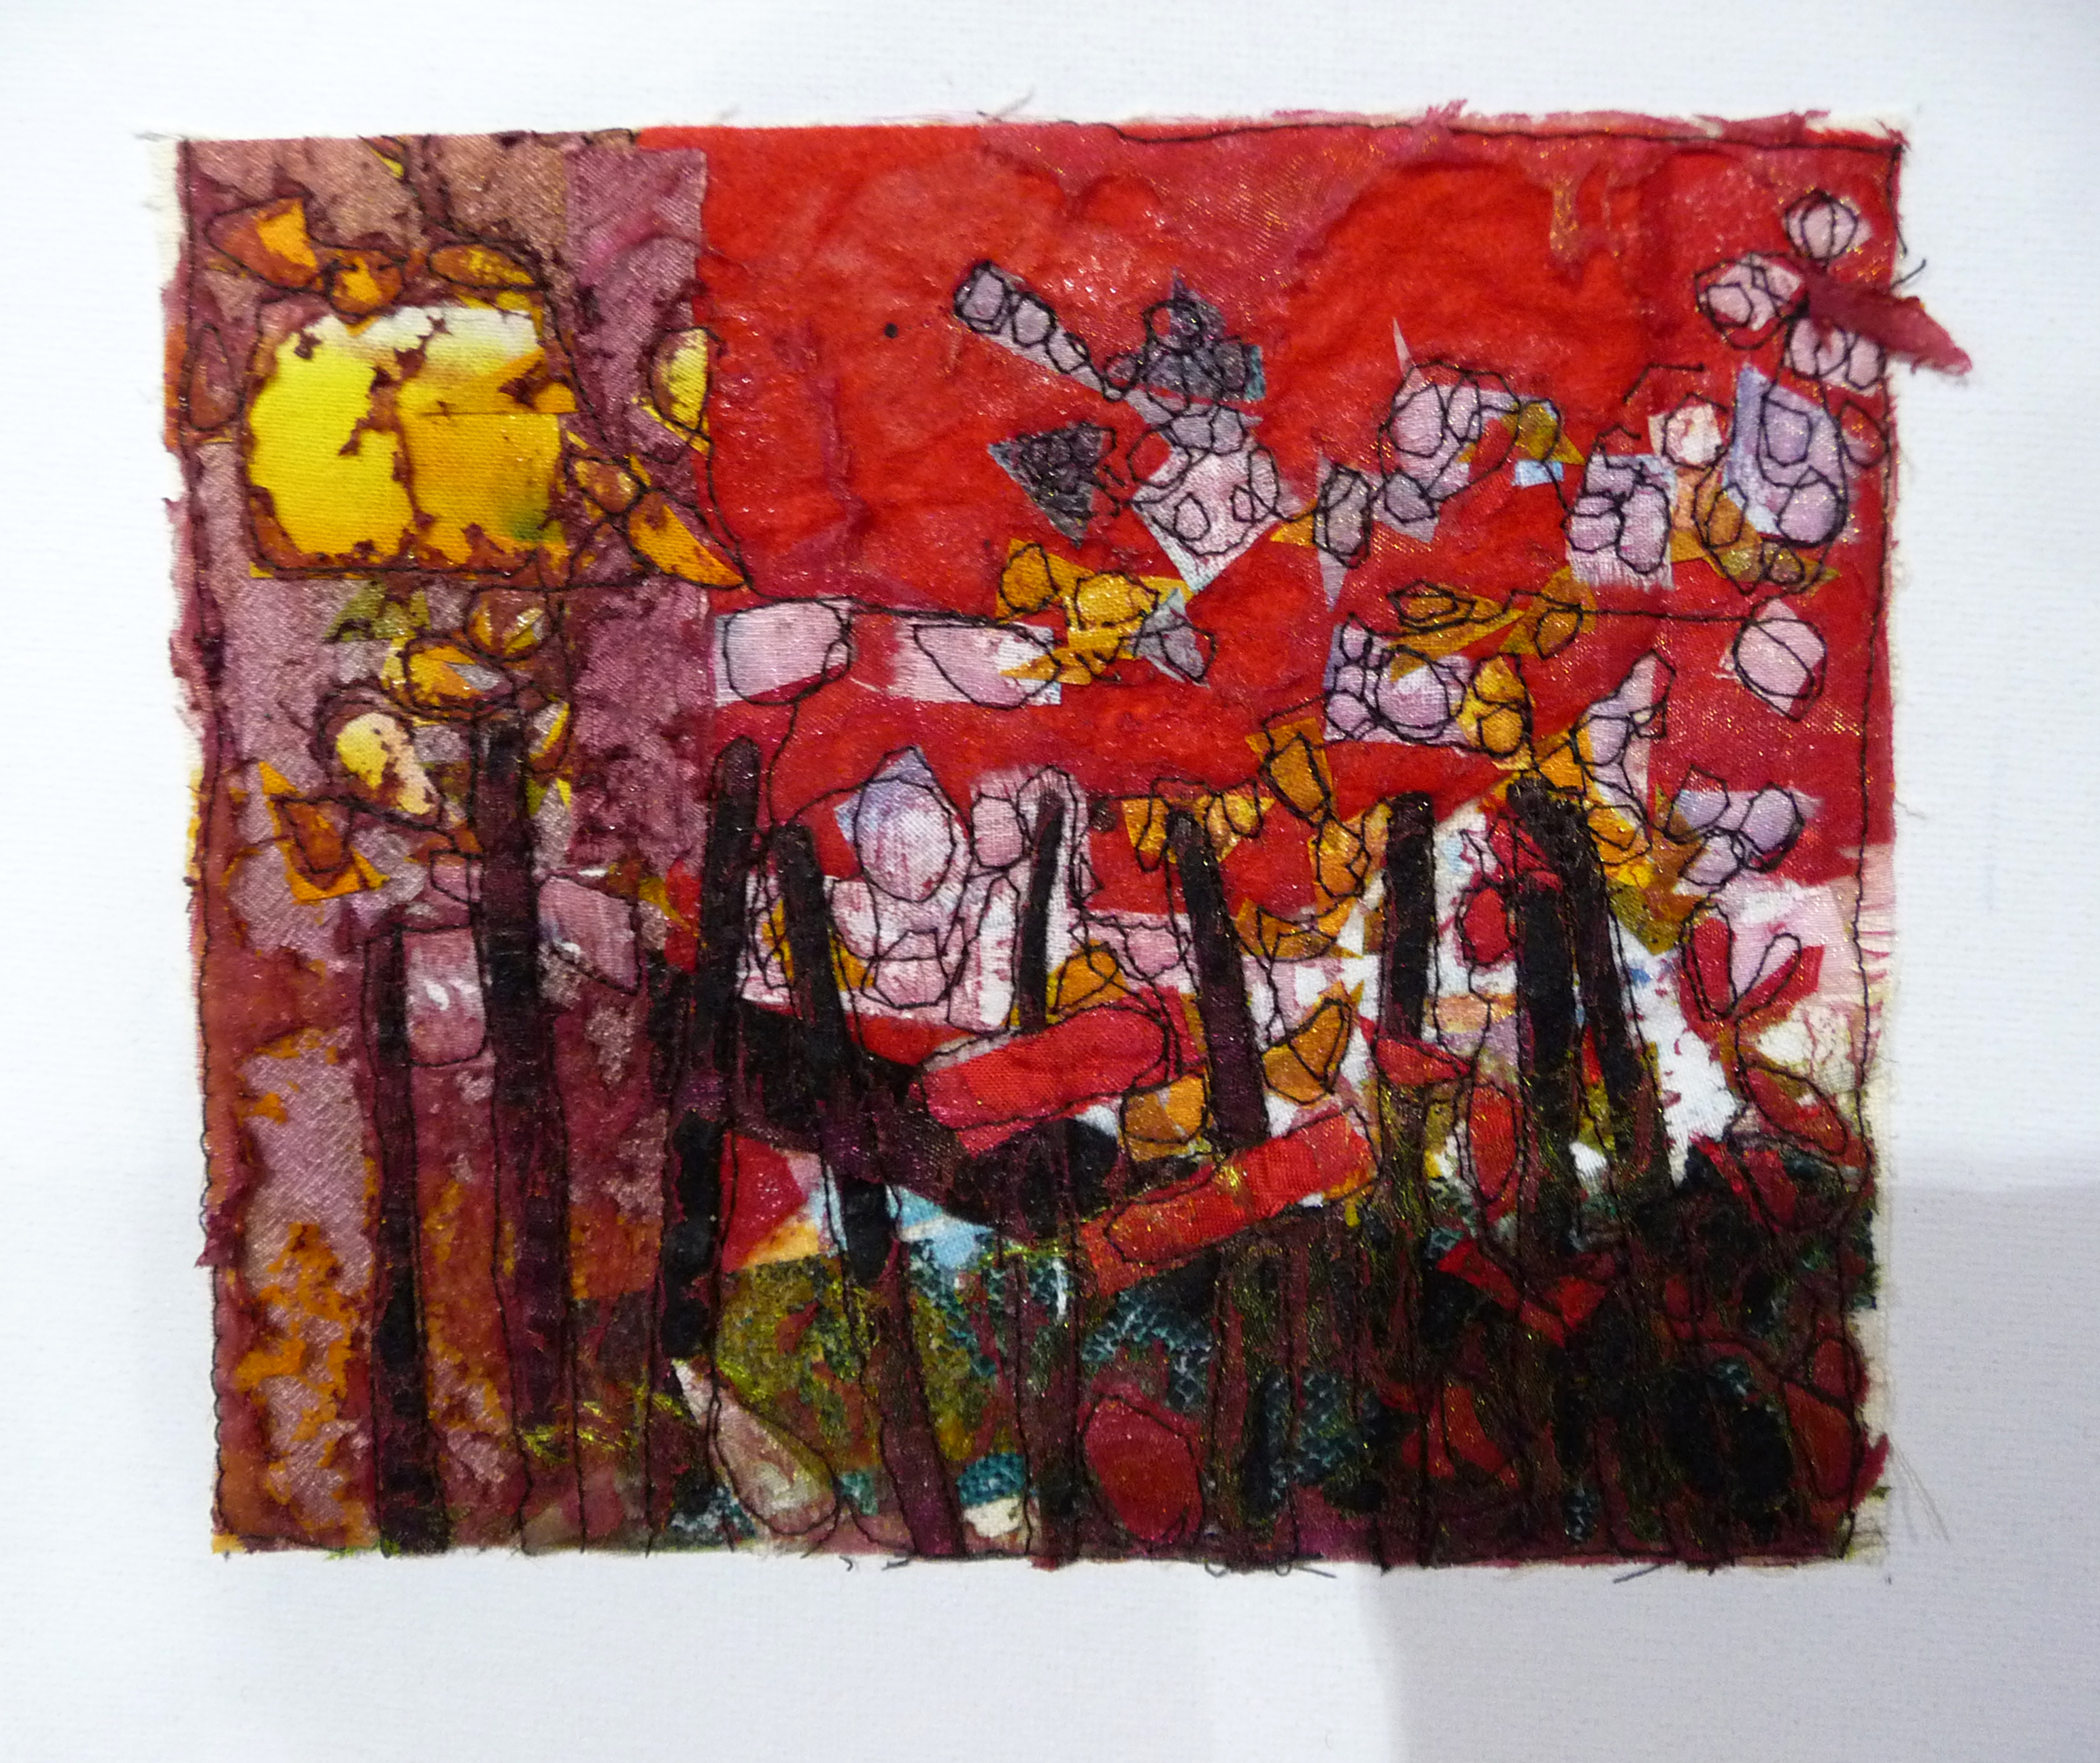 THE RED HOUSE by Susan Gallacher, fabric collage